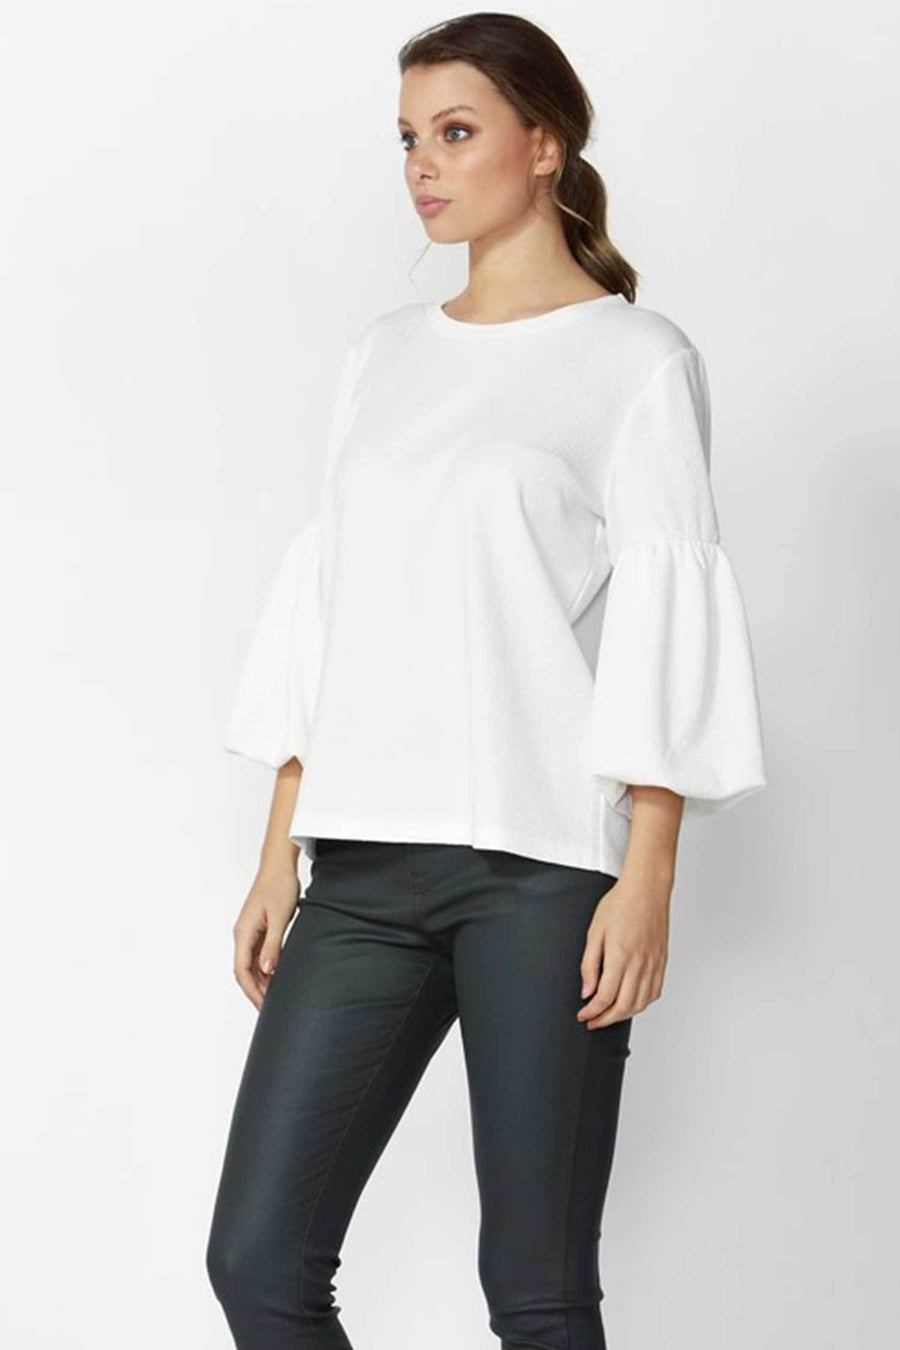 Shop Online Grecia Textured Top in Snow White by Fate + Becker  Frockaholics Tops